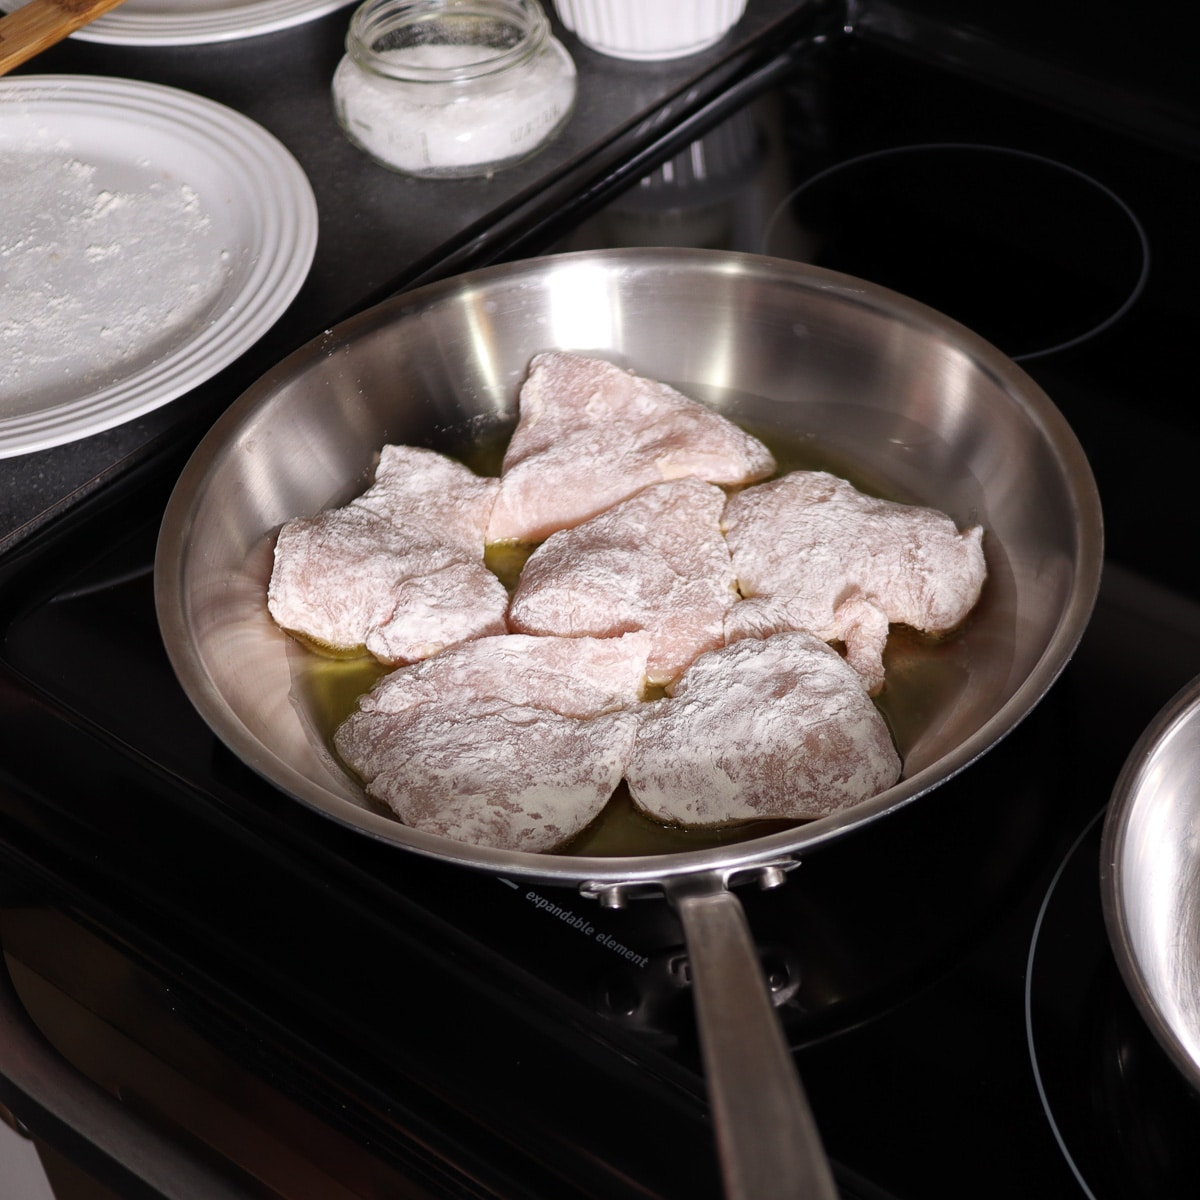 chicken that is floured added to preheated pan with oil